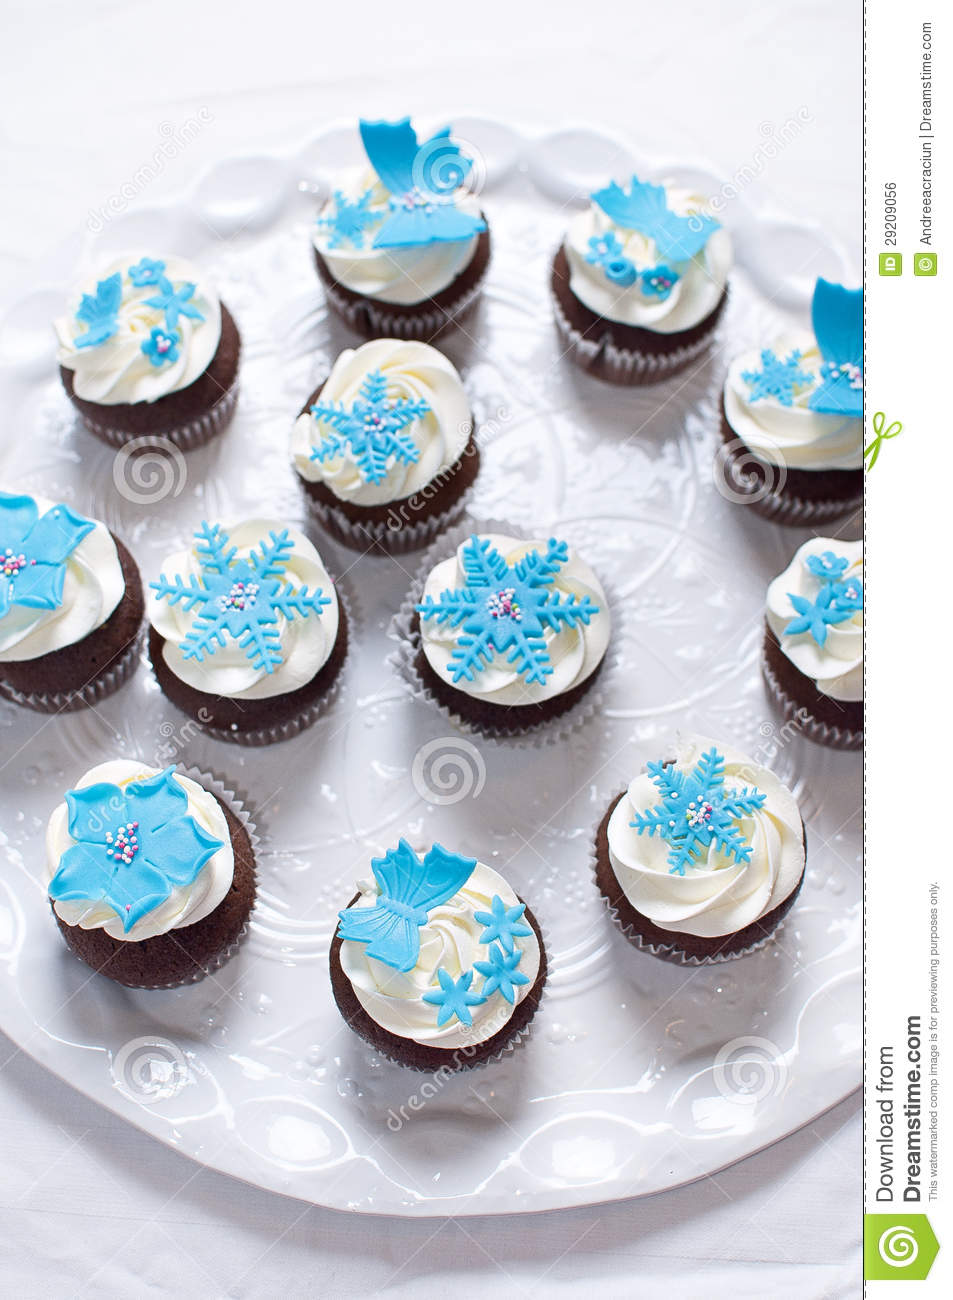 wedding cake fondant flower toppers winter cupcakes with fondant flower decorations stock 22689